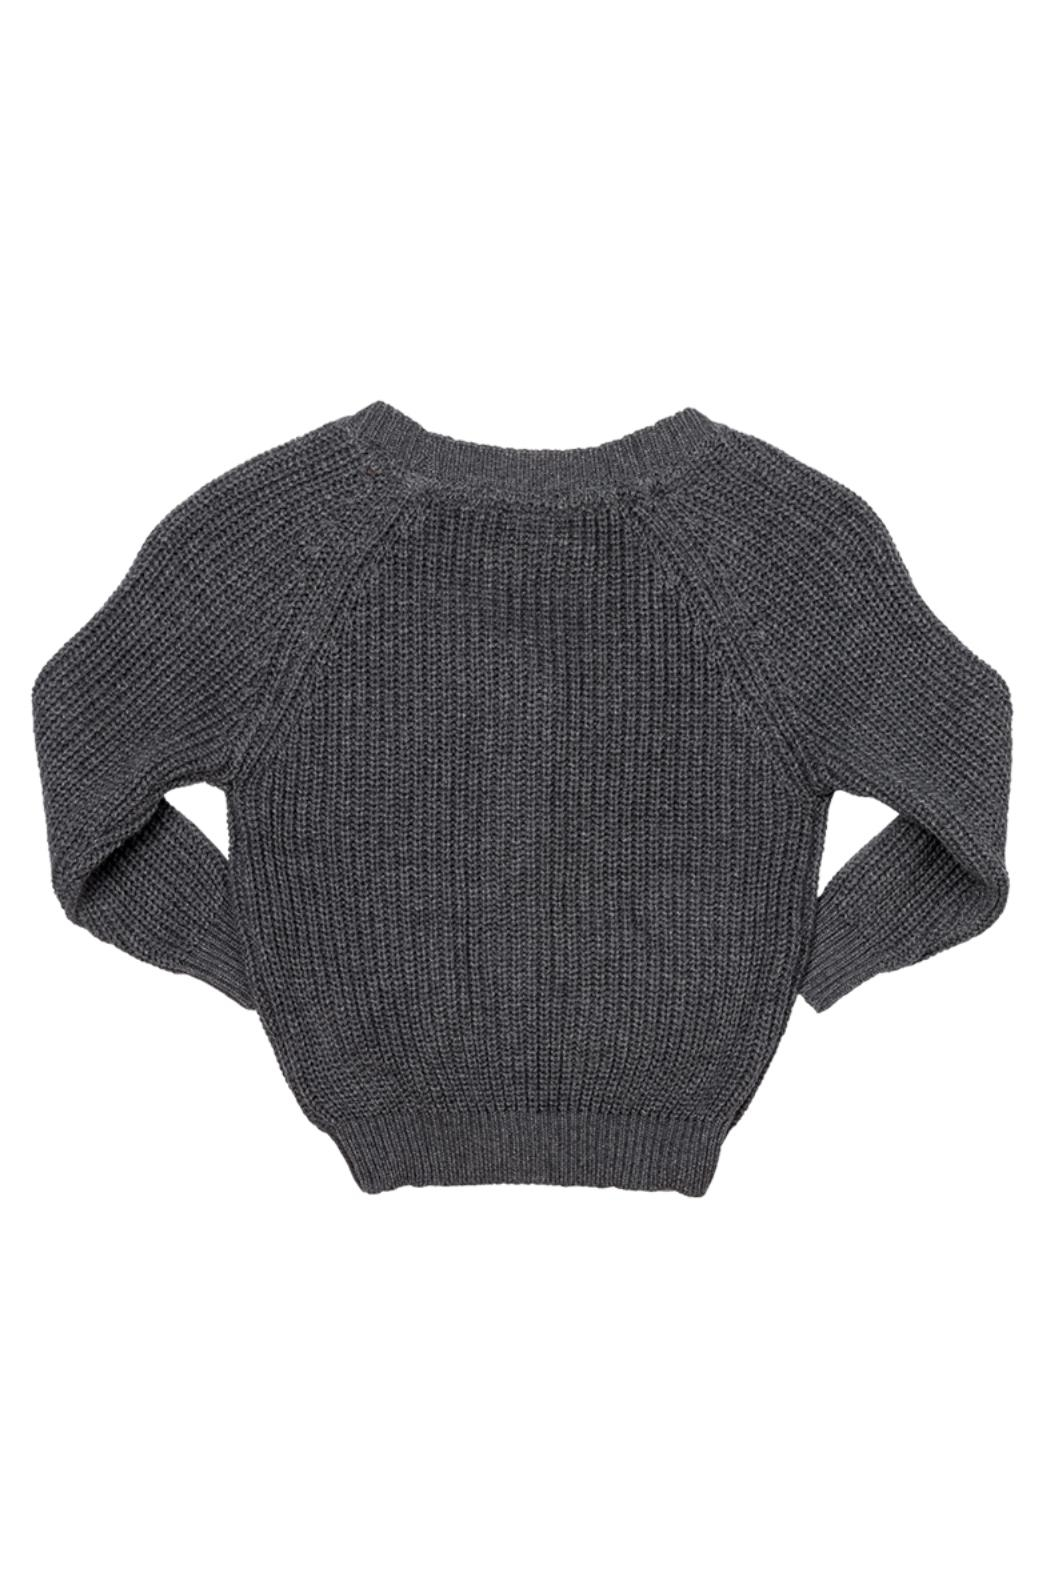 Rock Your Baby Grey Slouch Cardigan - Front Full Image